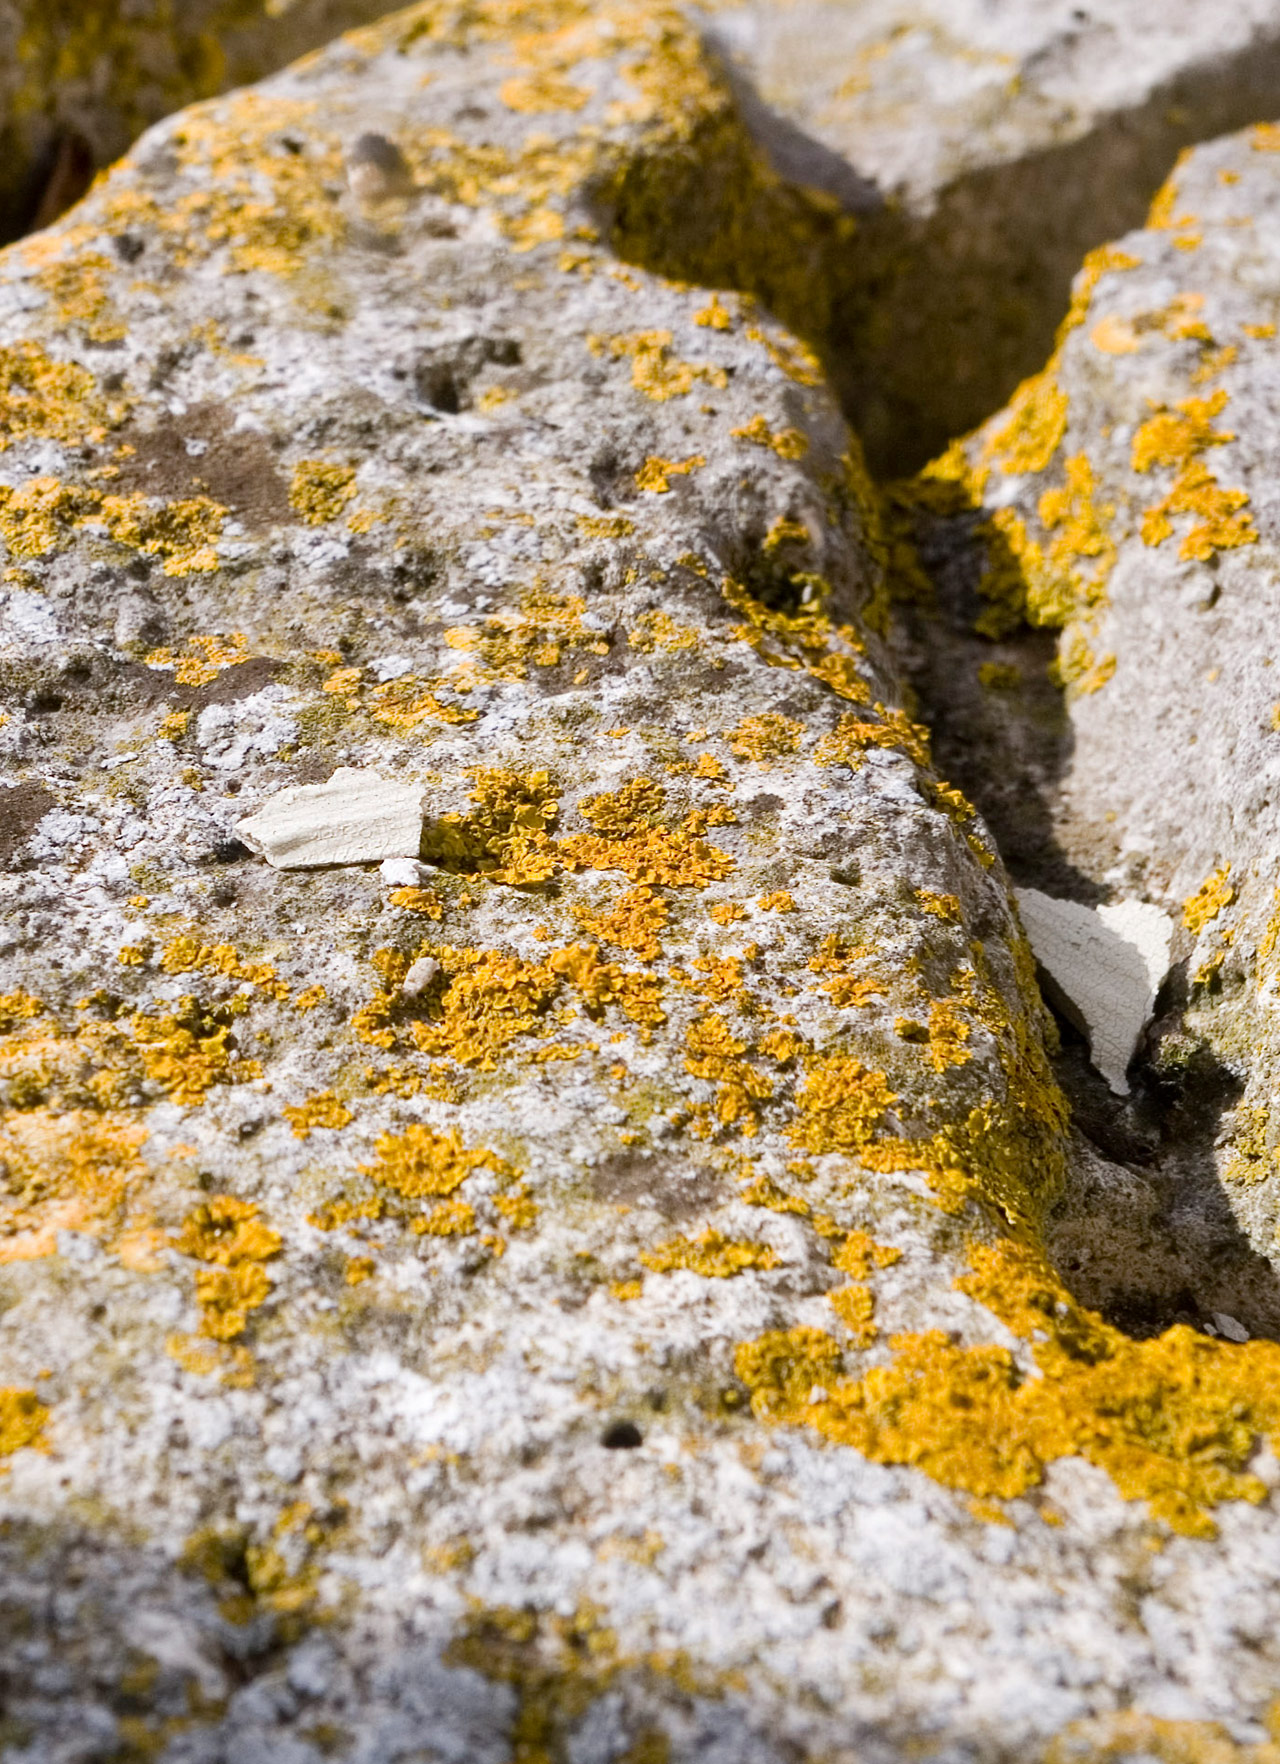 Close up view of jagged rock surface with yellow moss